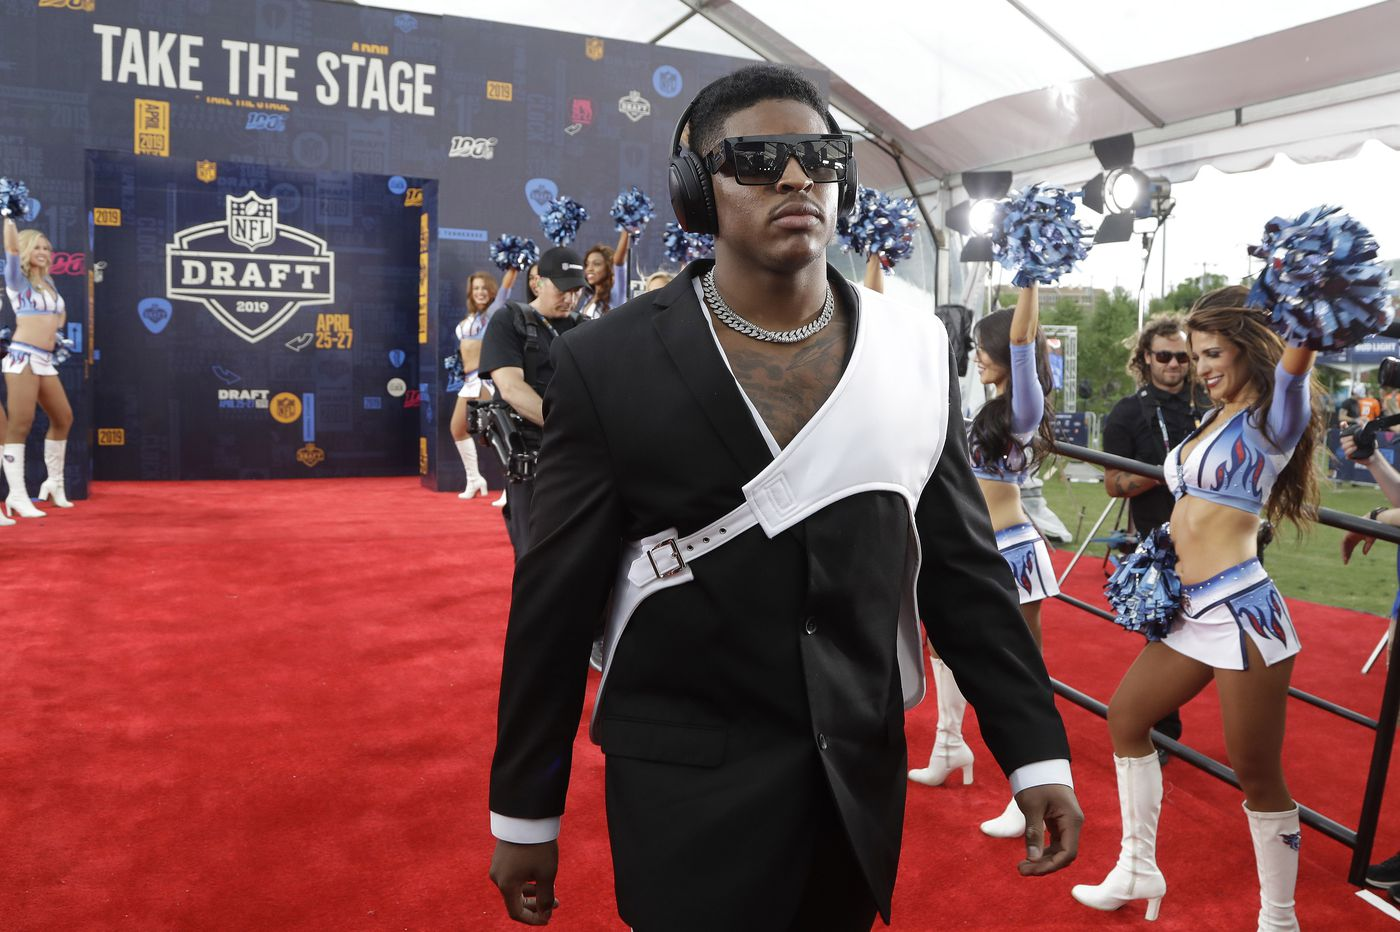 For Eagles, what will happen Friday night at the NFL draft? | Early Birds